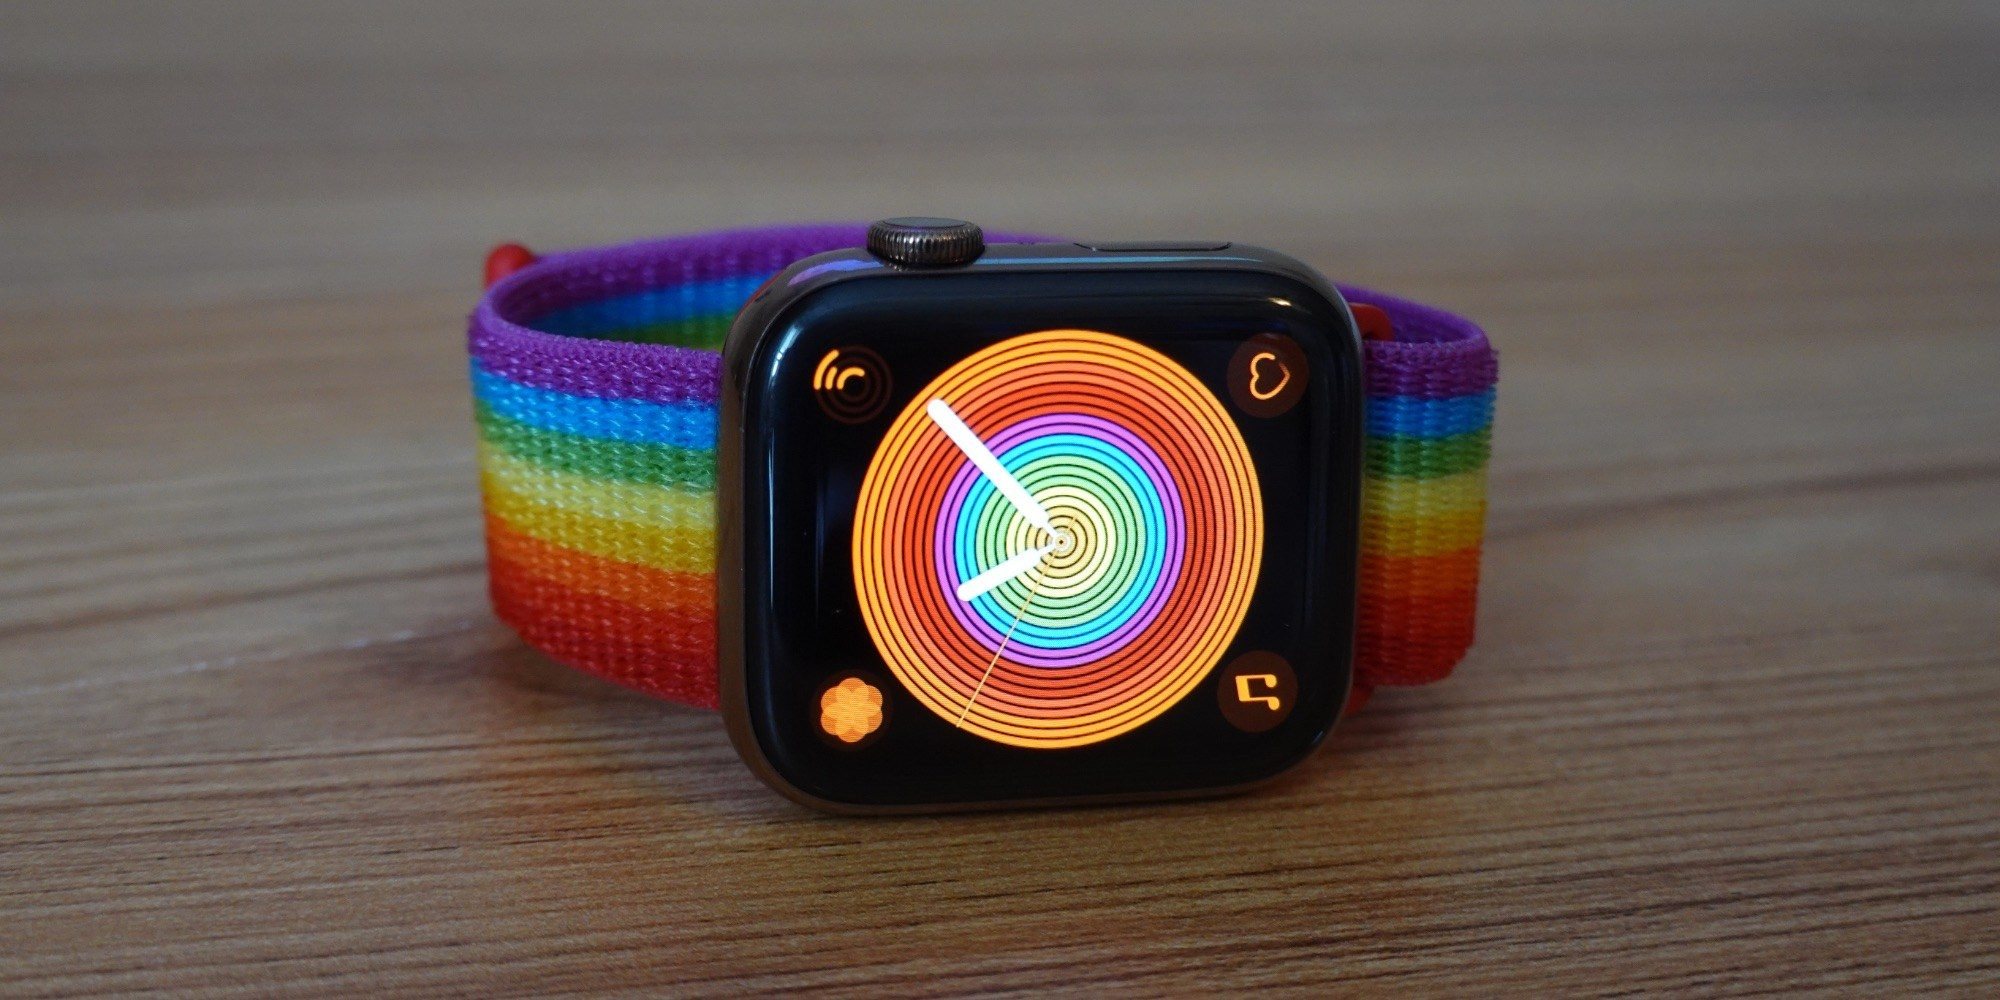 The 2019 Pride Sport Loop and Apple Watch faces